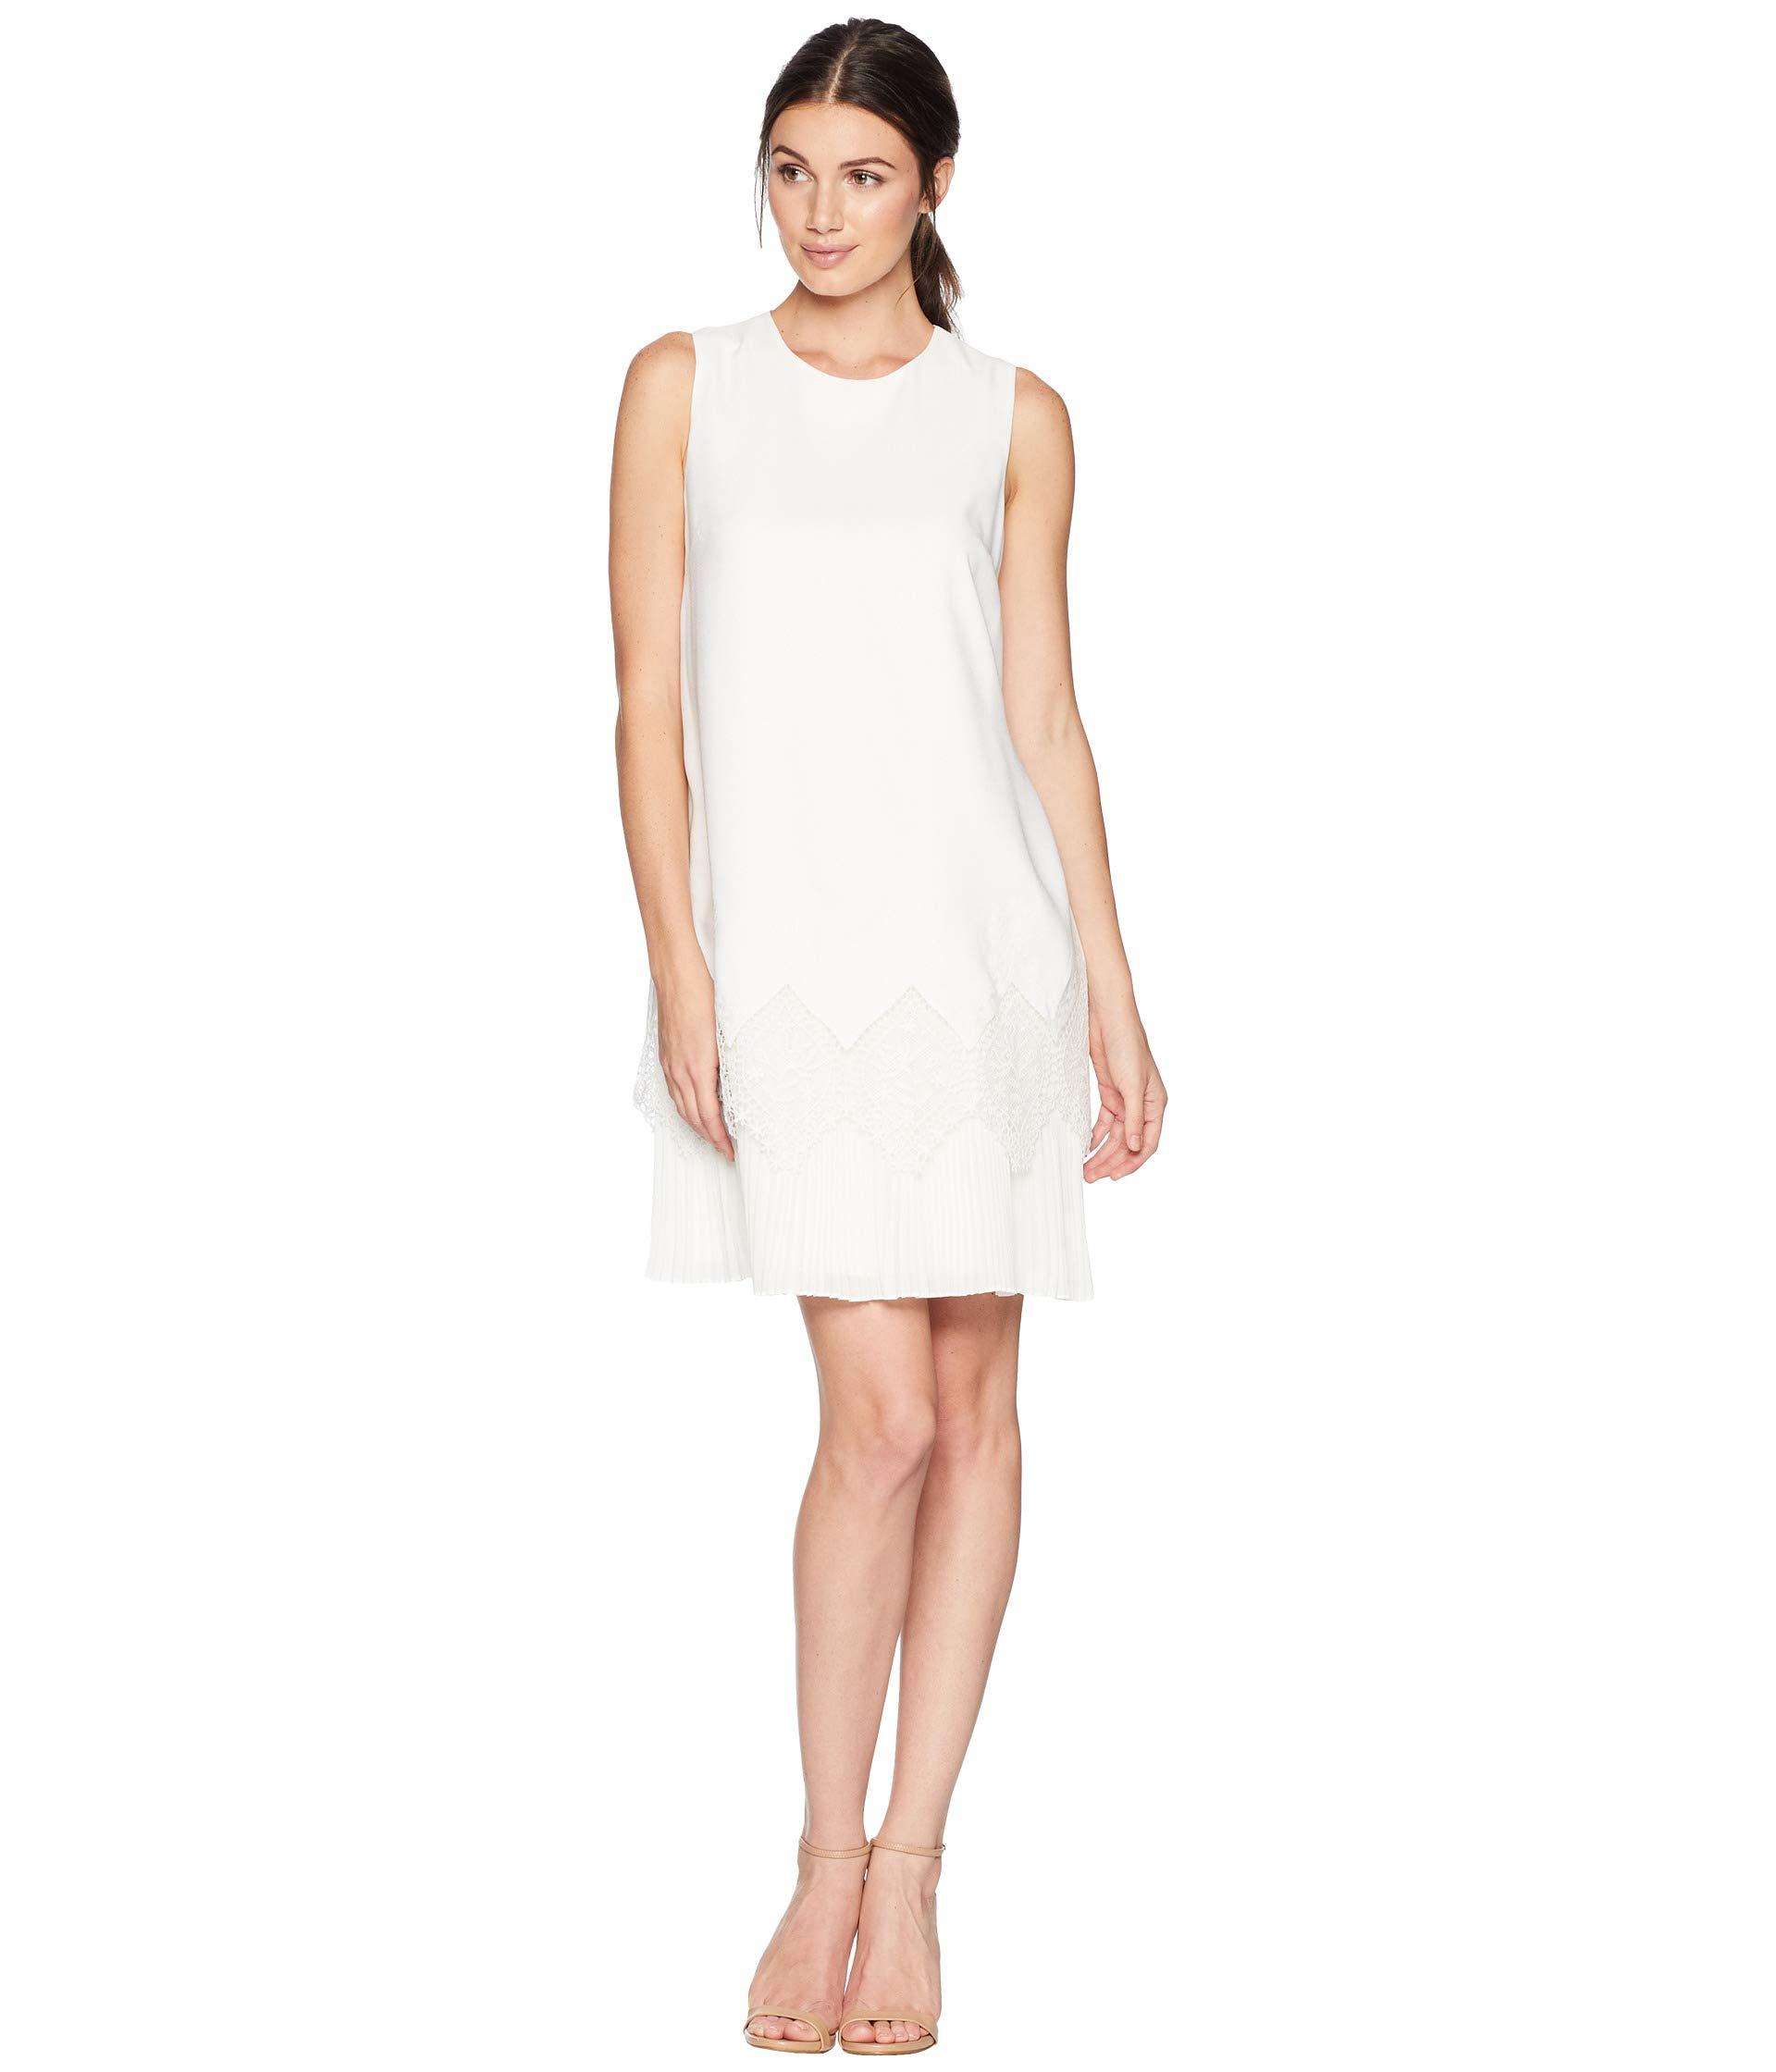 e5e570f99b1 Lyst - Ted Baker Nadeen Pleated Detail Hem Shift in White - Save 38%